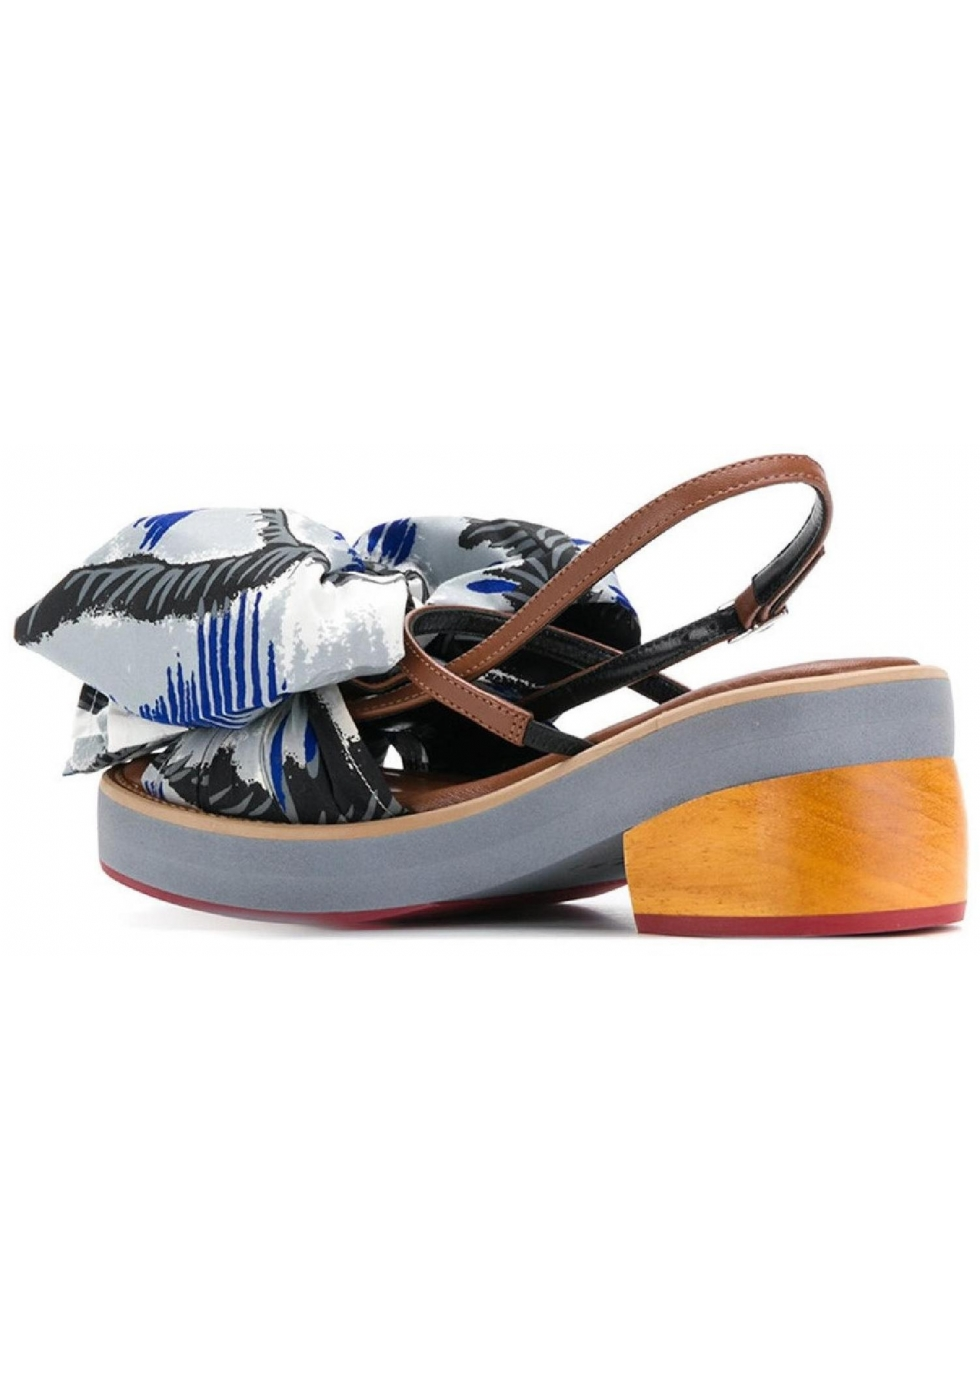 58139d7283bc Marni kitten heel sandals with big fabric bow - Italian Boutique